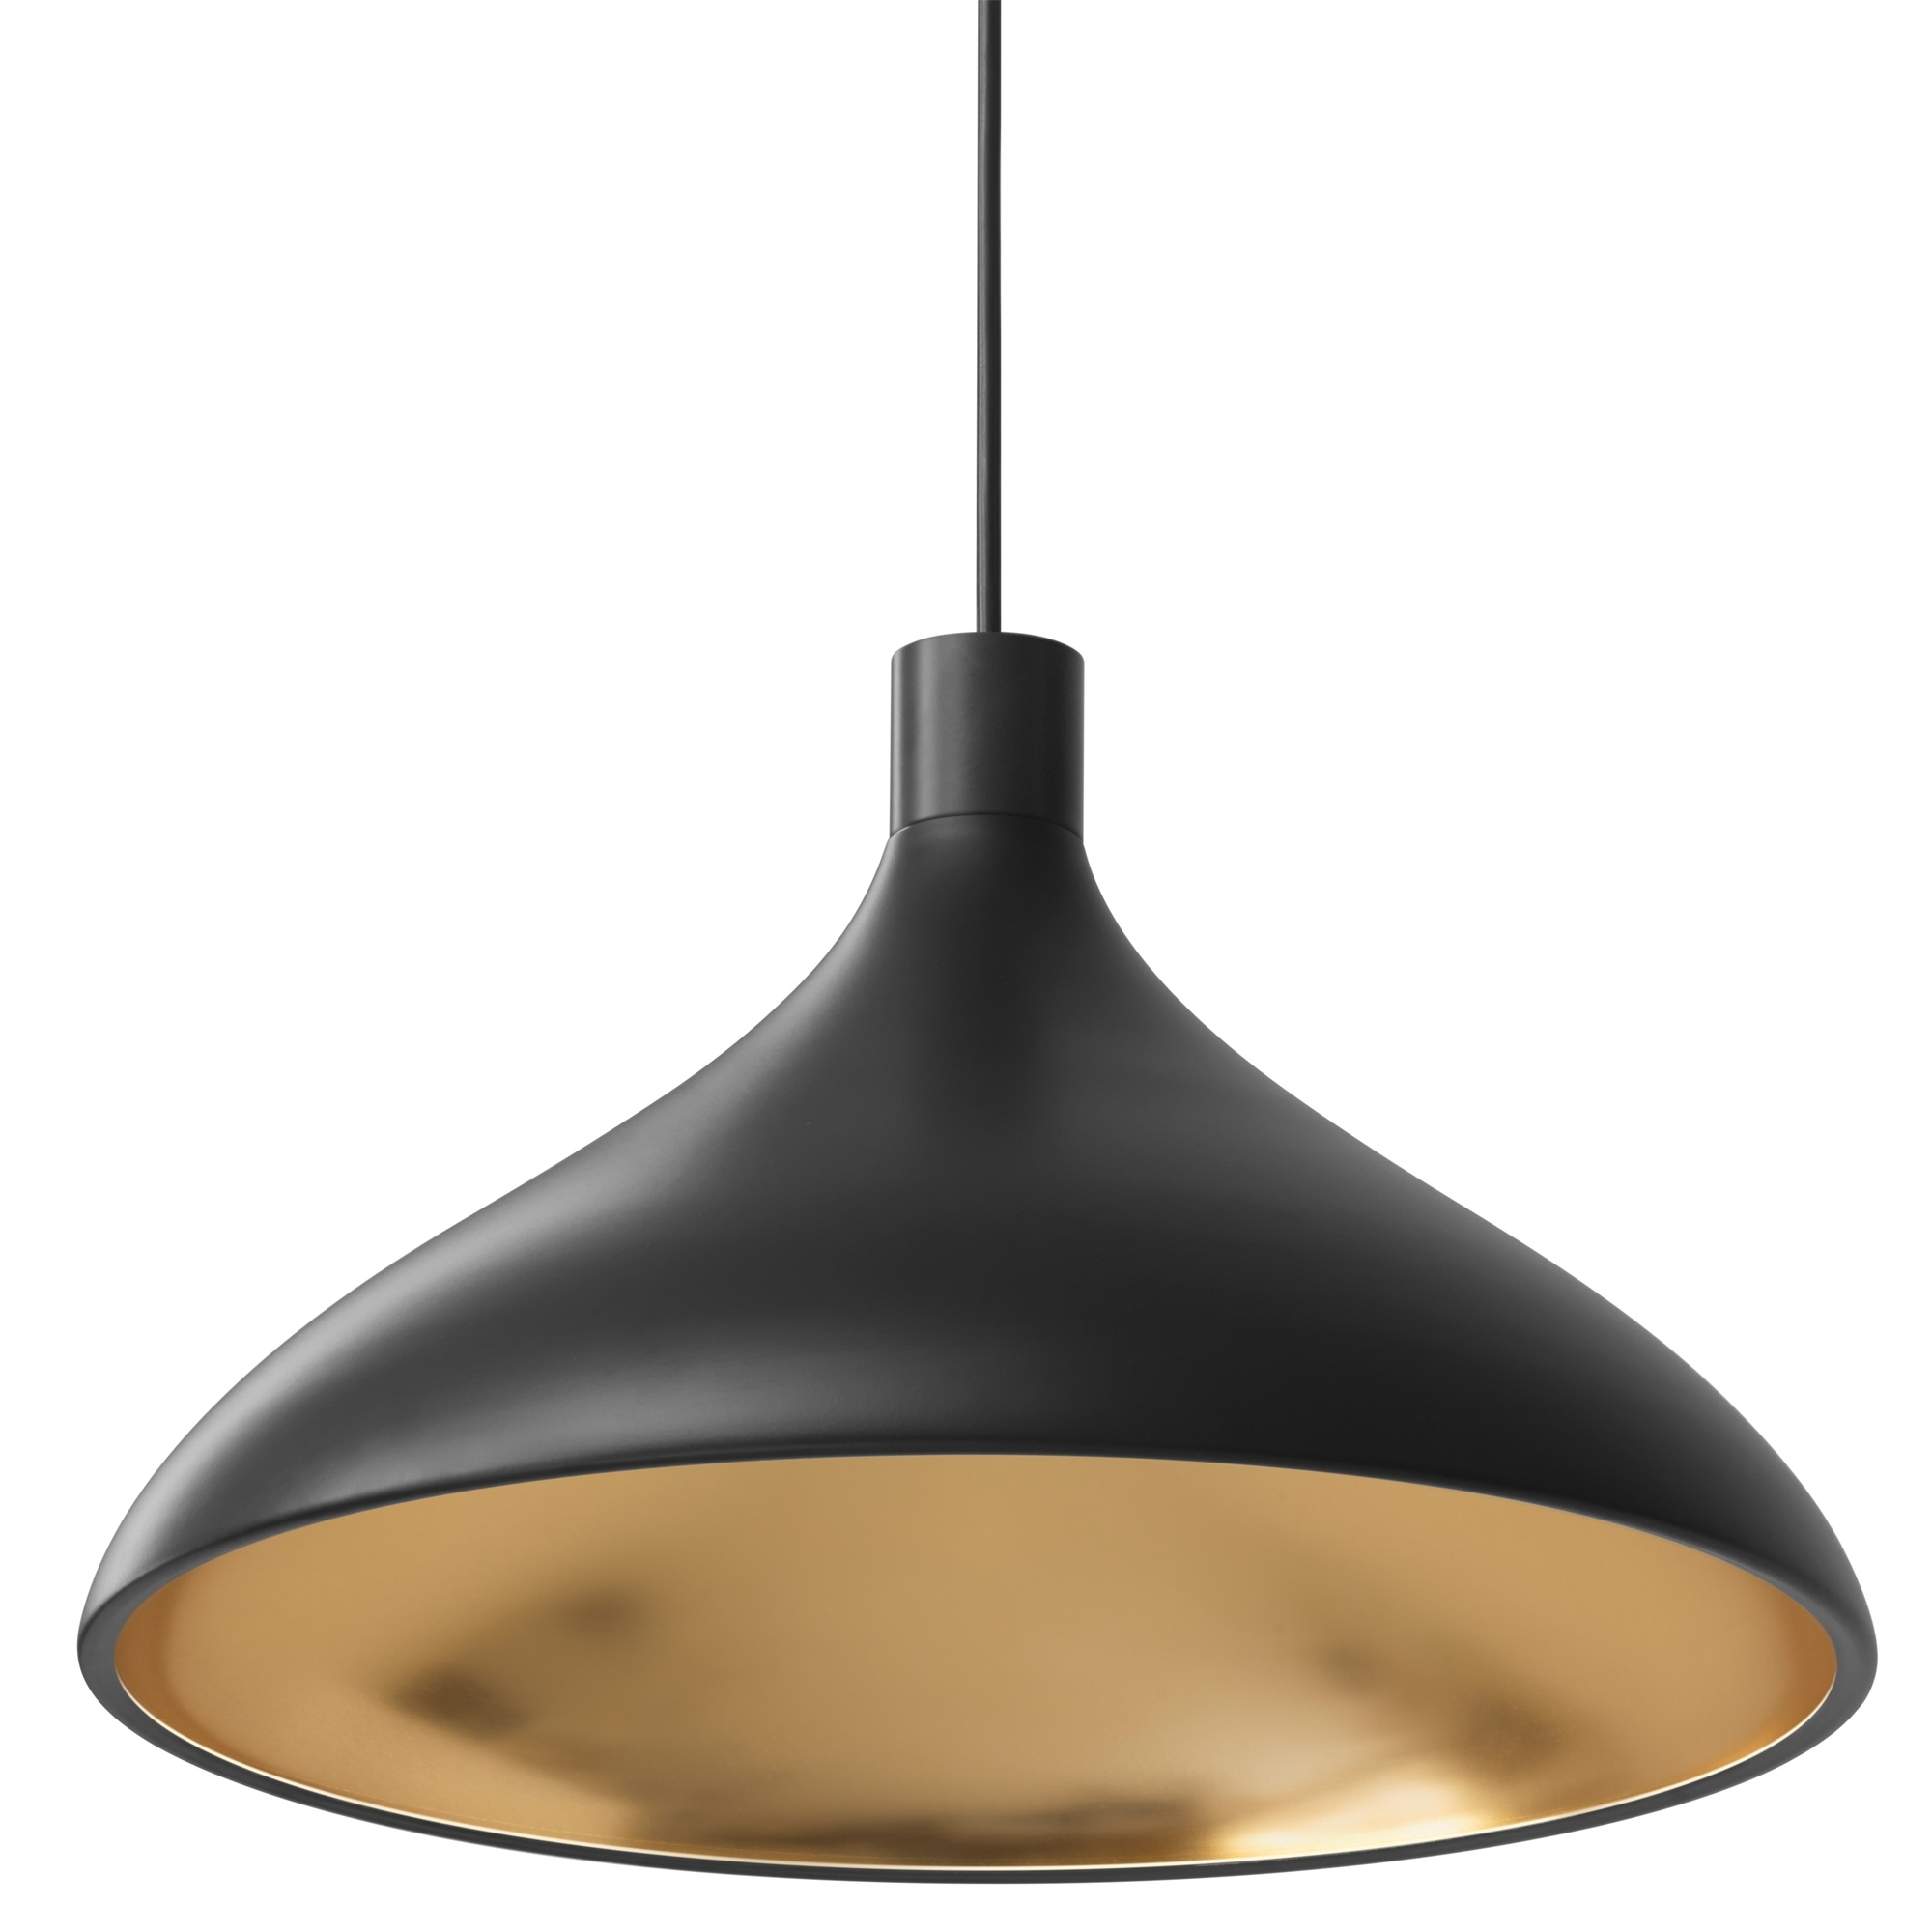 Furniture : Modern Outdoor Pendant Lighting Fixtures Perfect Lights Pertaining To Melbourne Outdoor Ceiling Lights (#10 of 15)